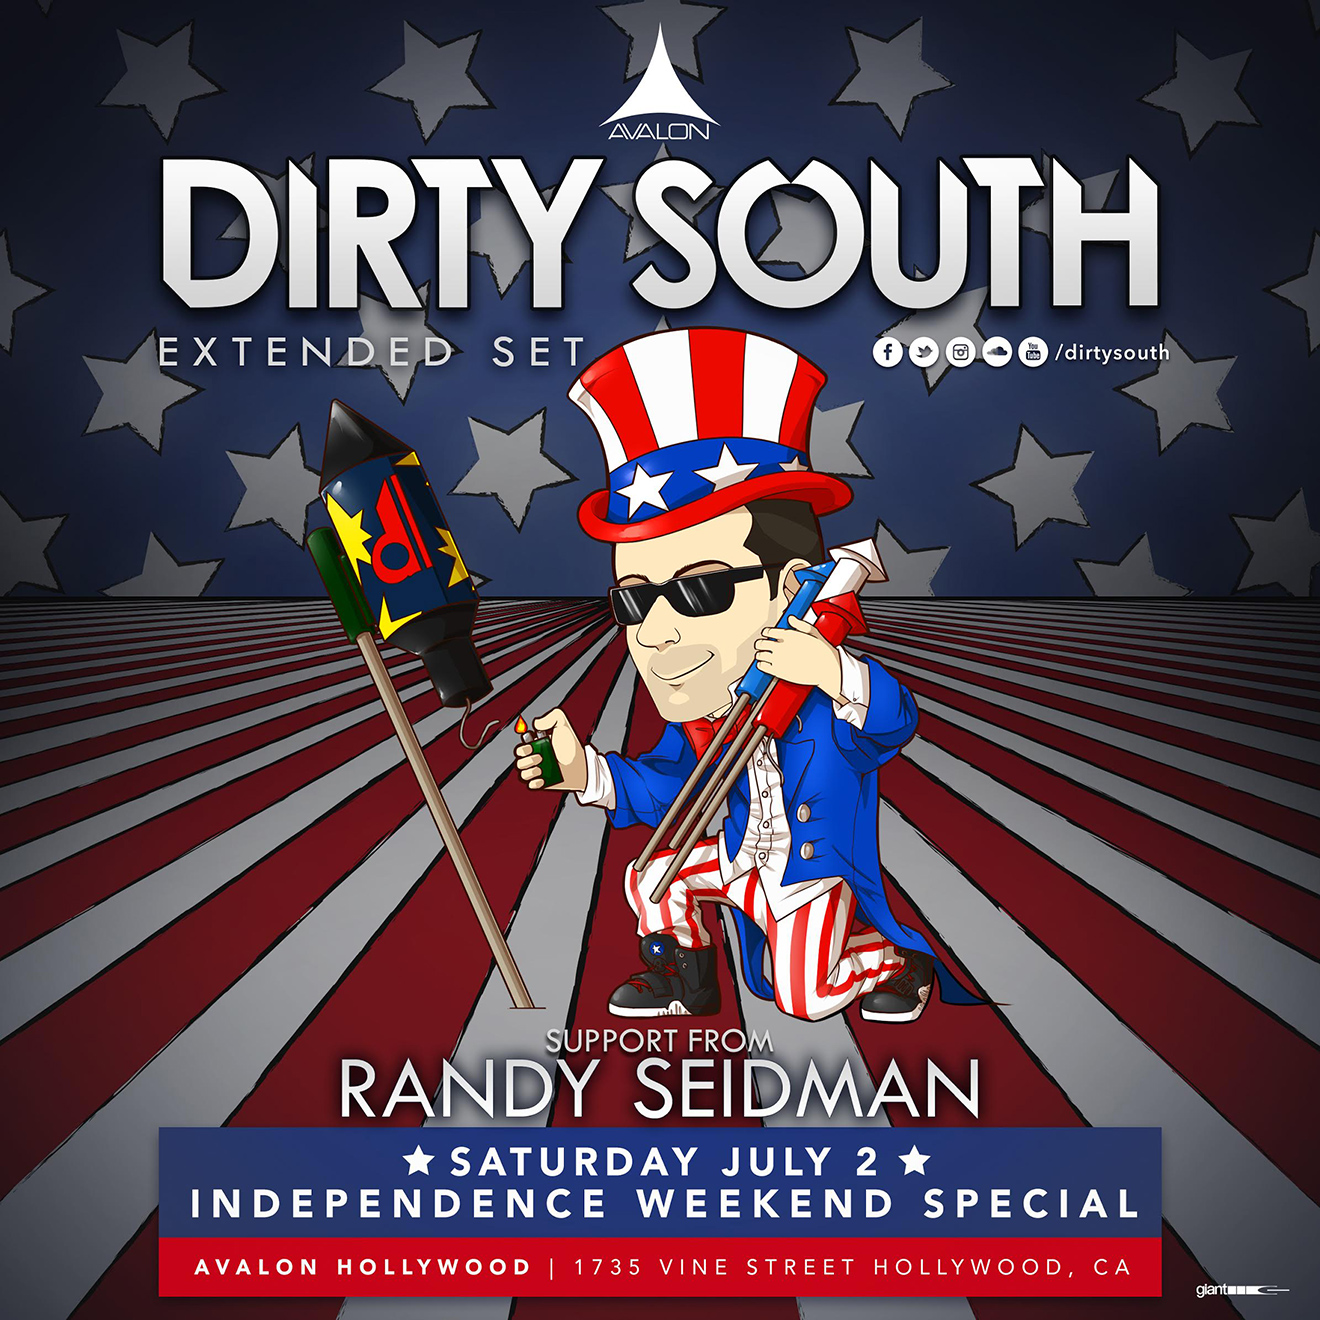 Dirty South, Randy Seidman